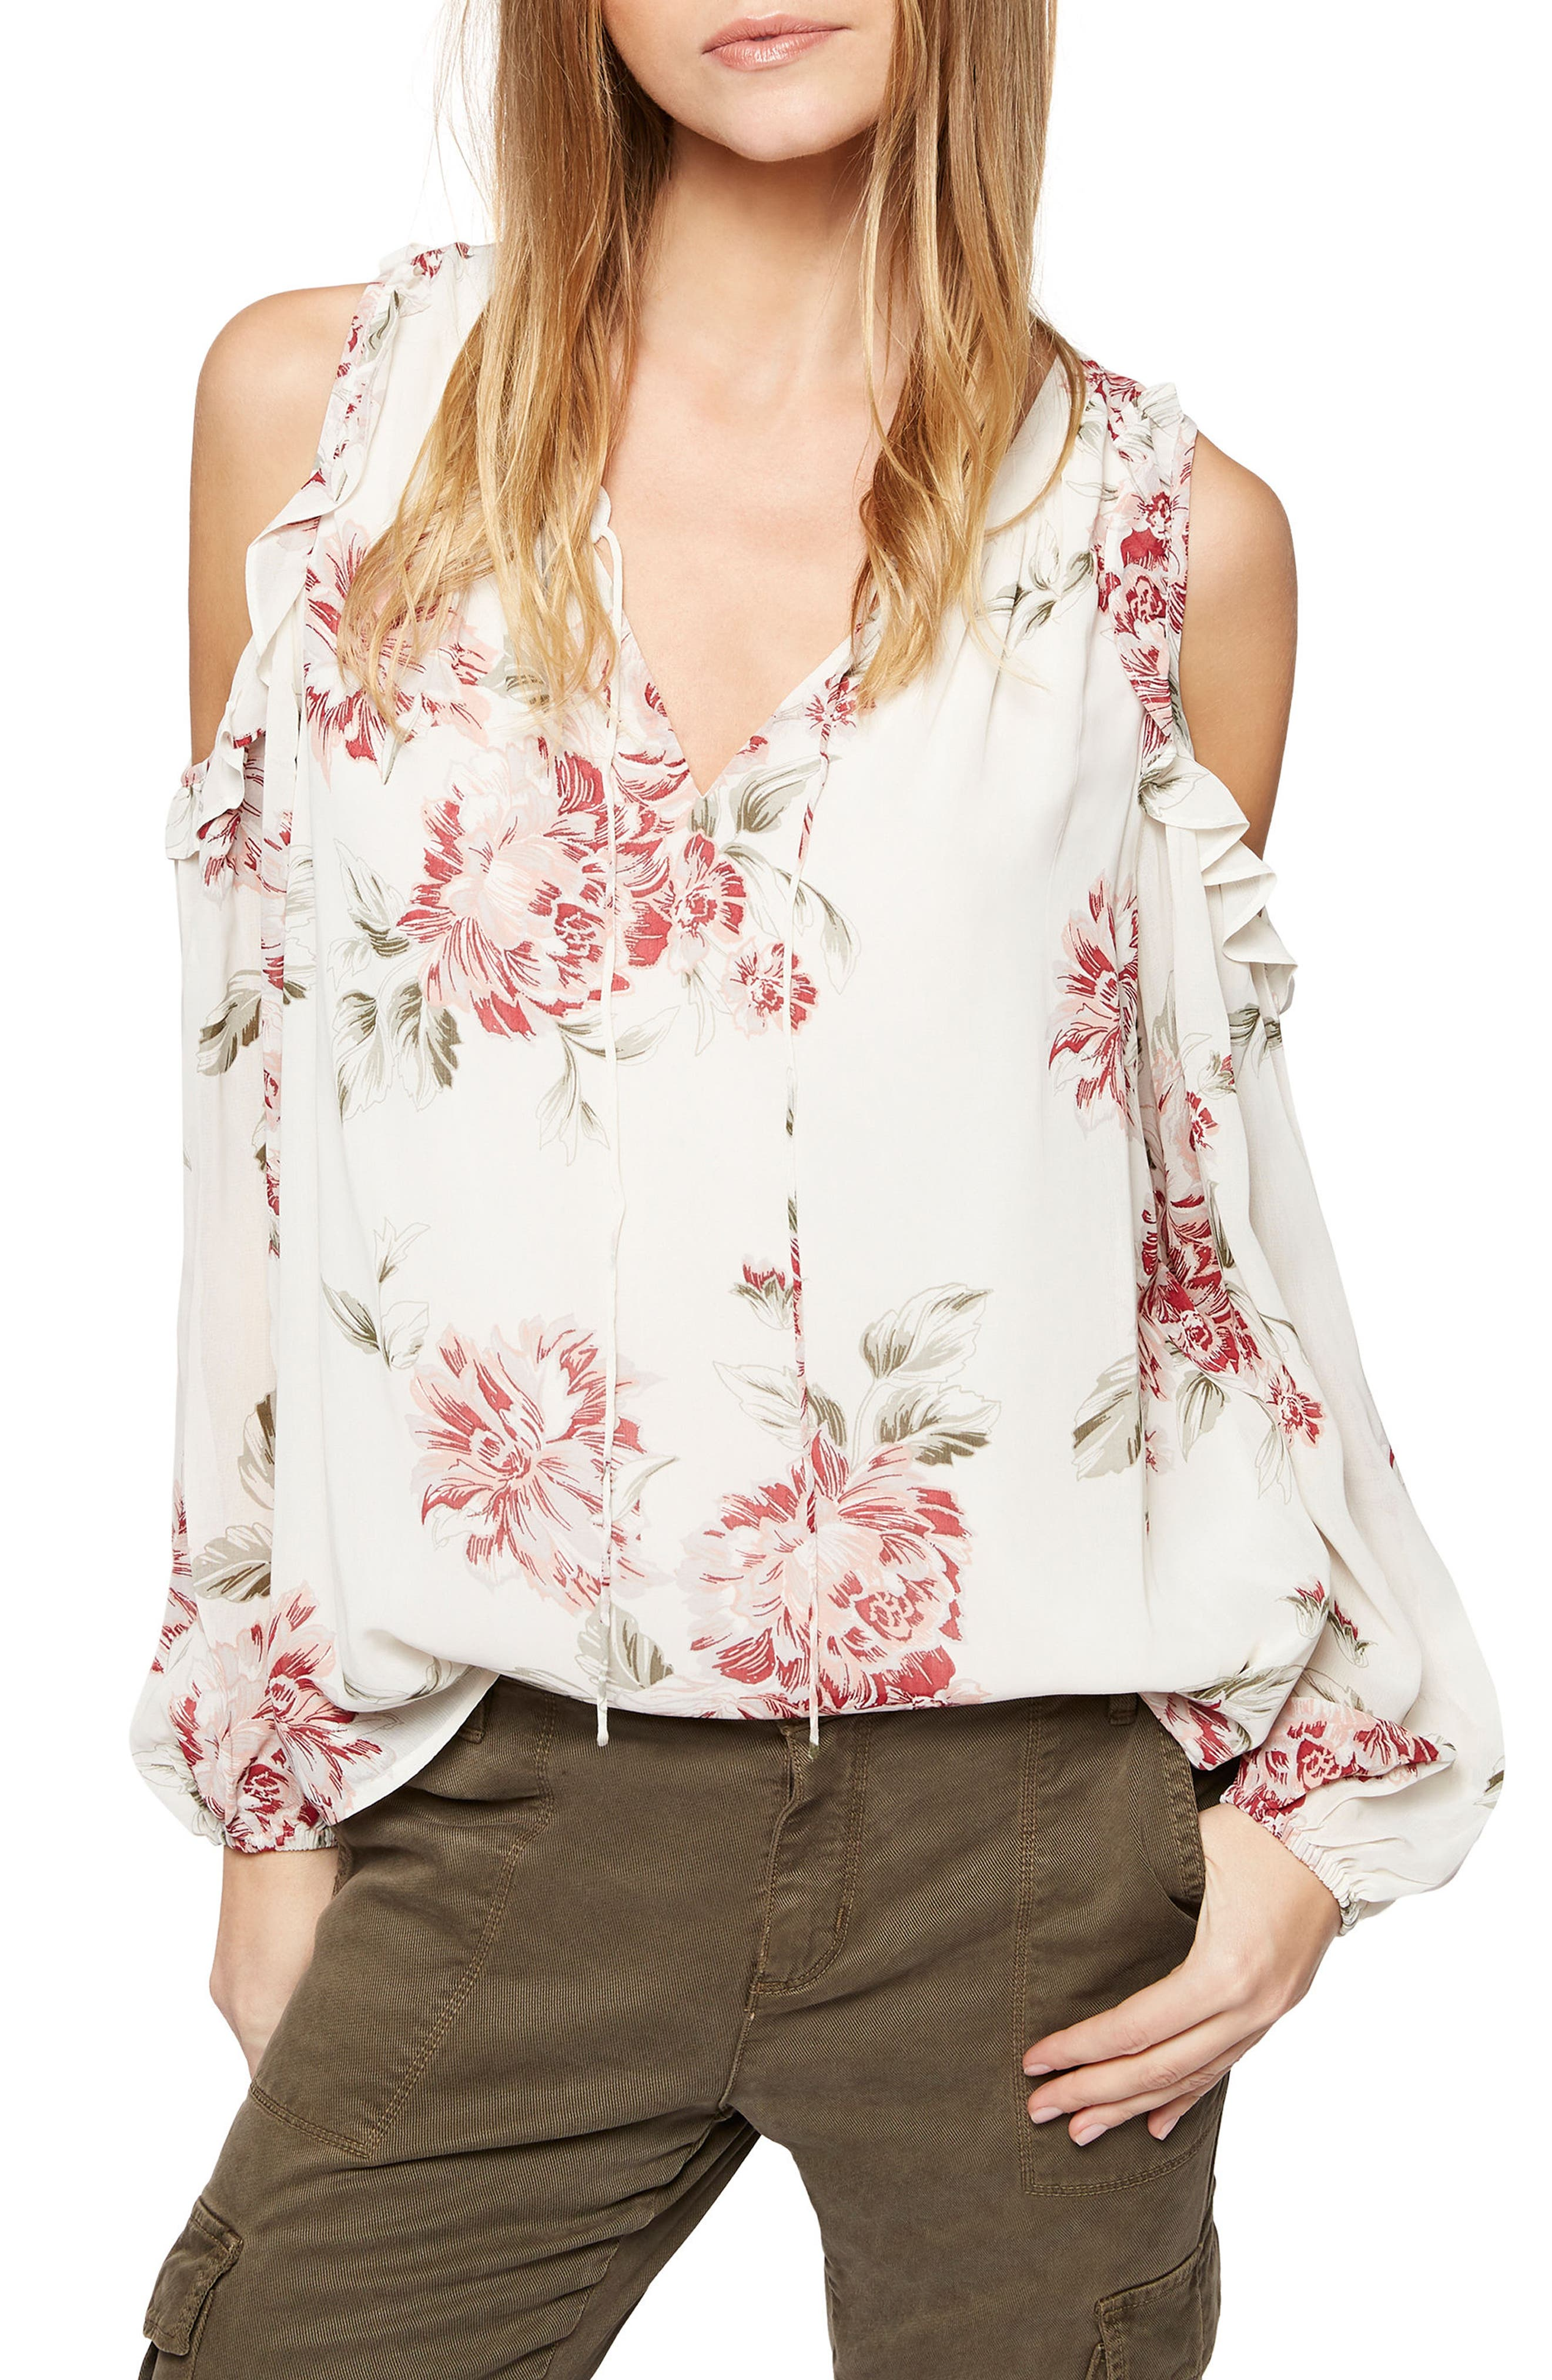 Main Image - Sanctuary Blaire Cold Shoulder Top (Regular & Petite)